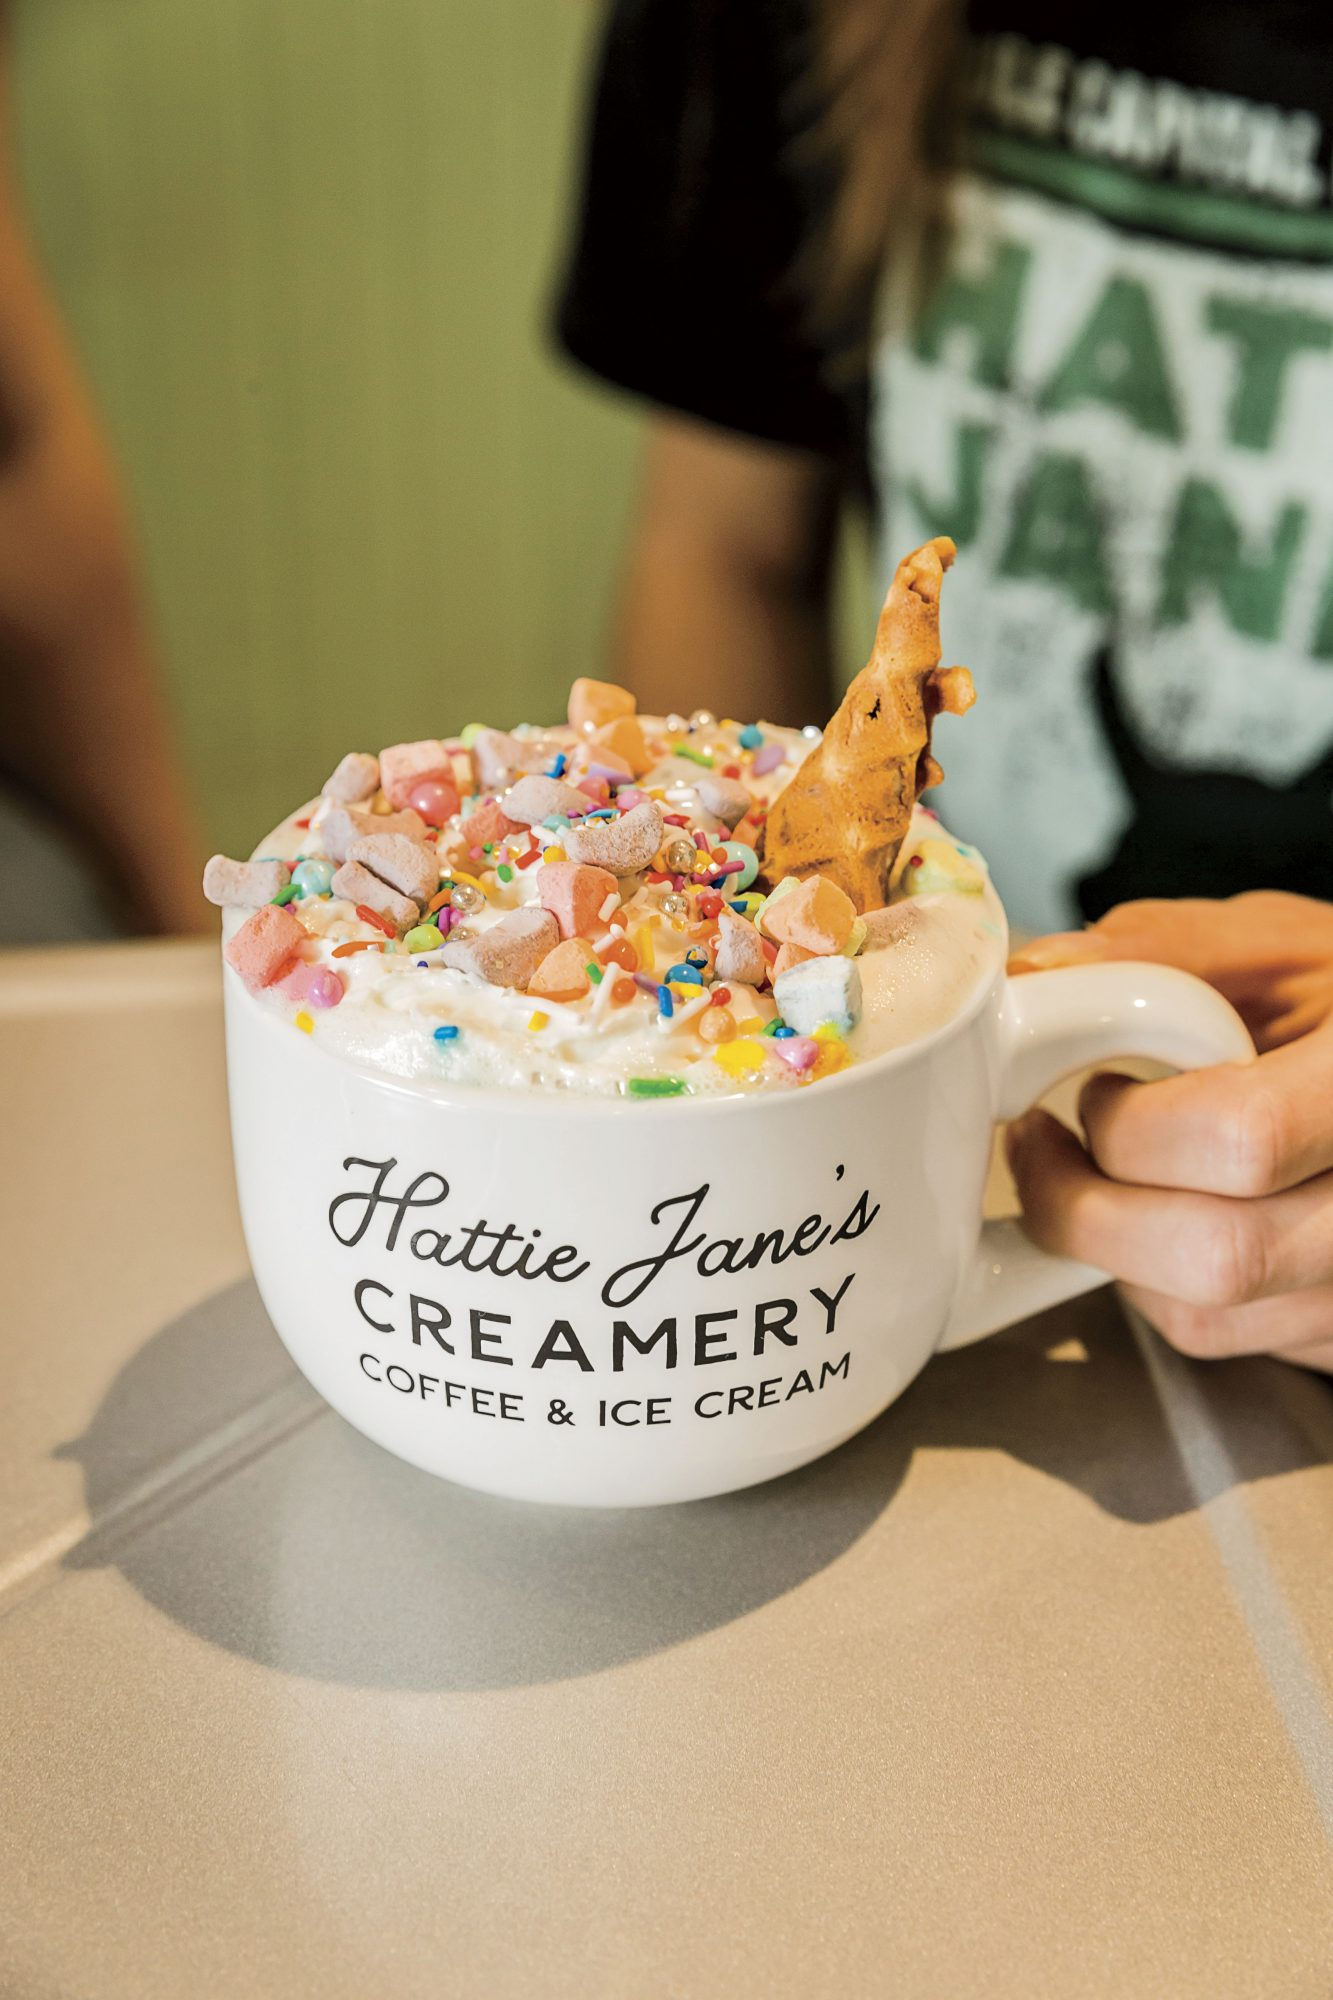 Hattie Jane's Creamery in Columbia, TN